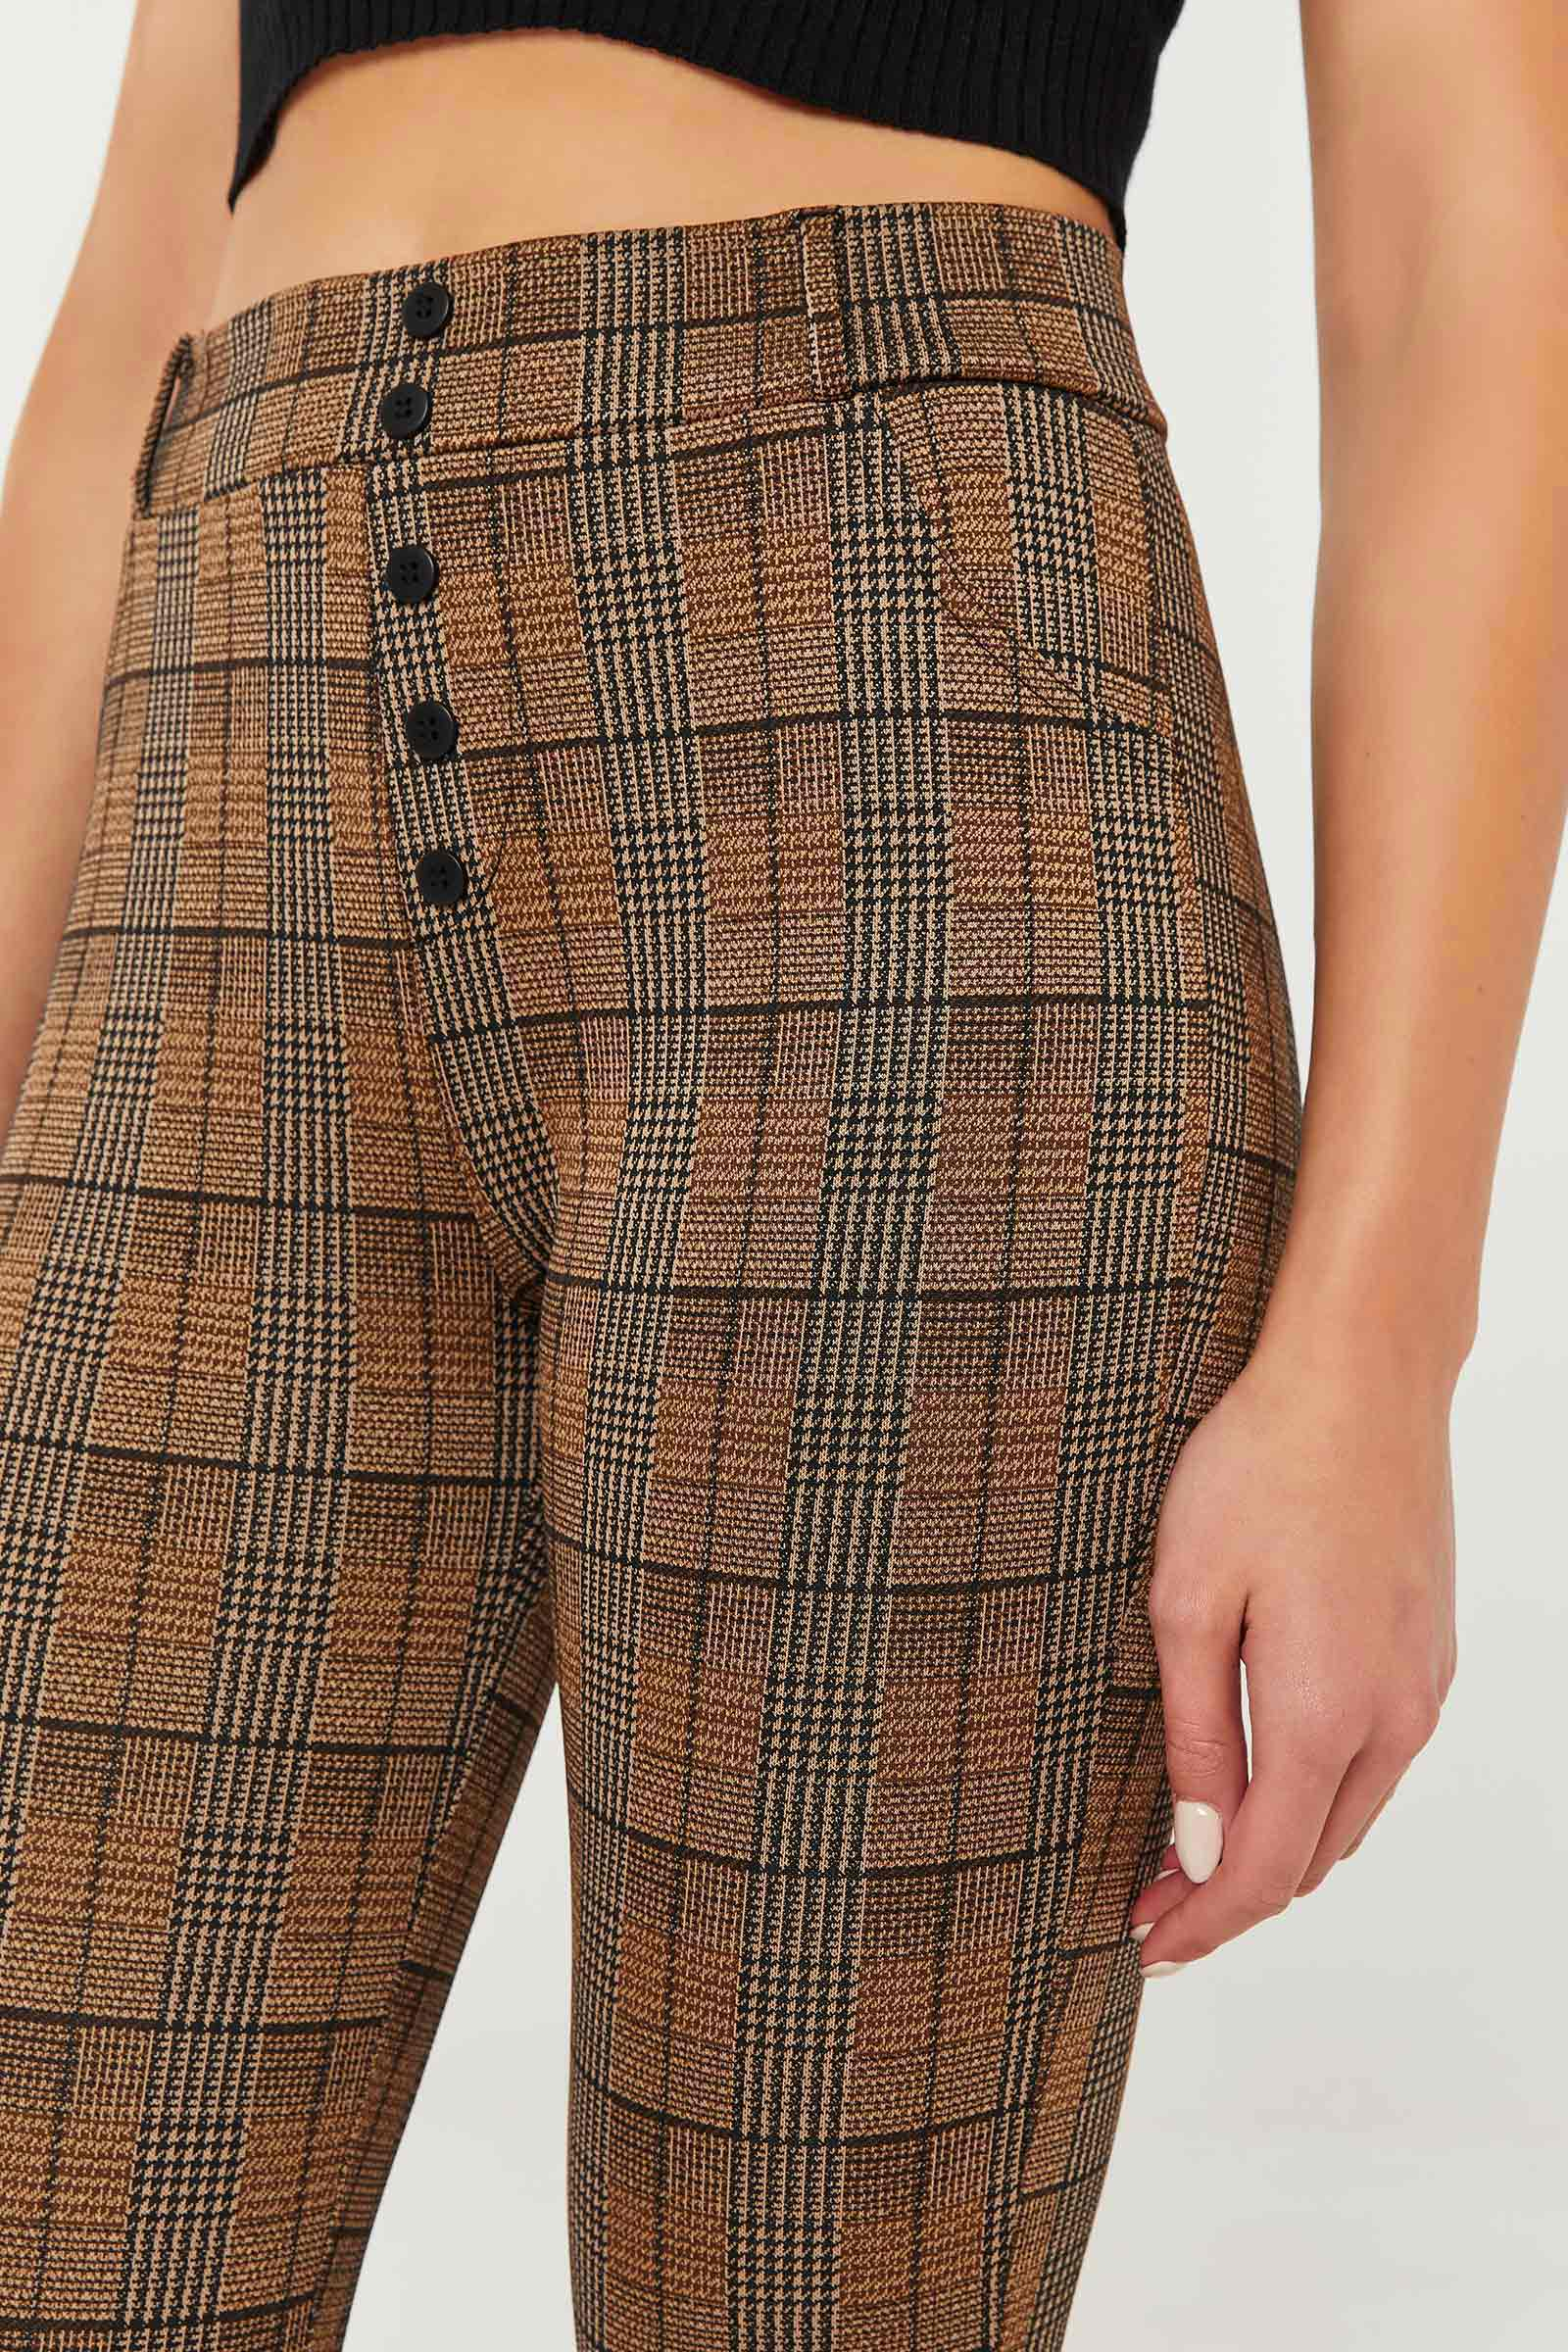 Glen Plaid Leggings with Buttons